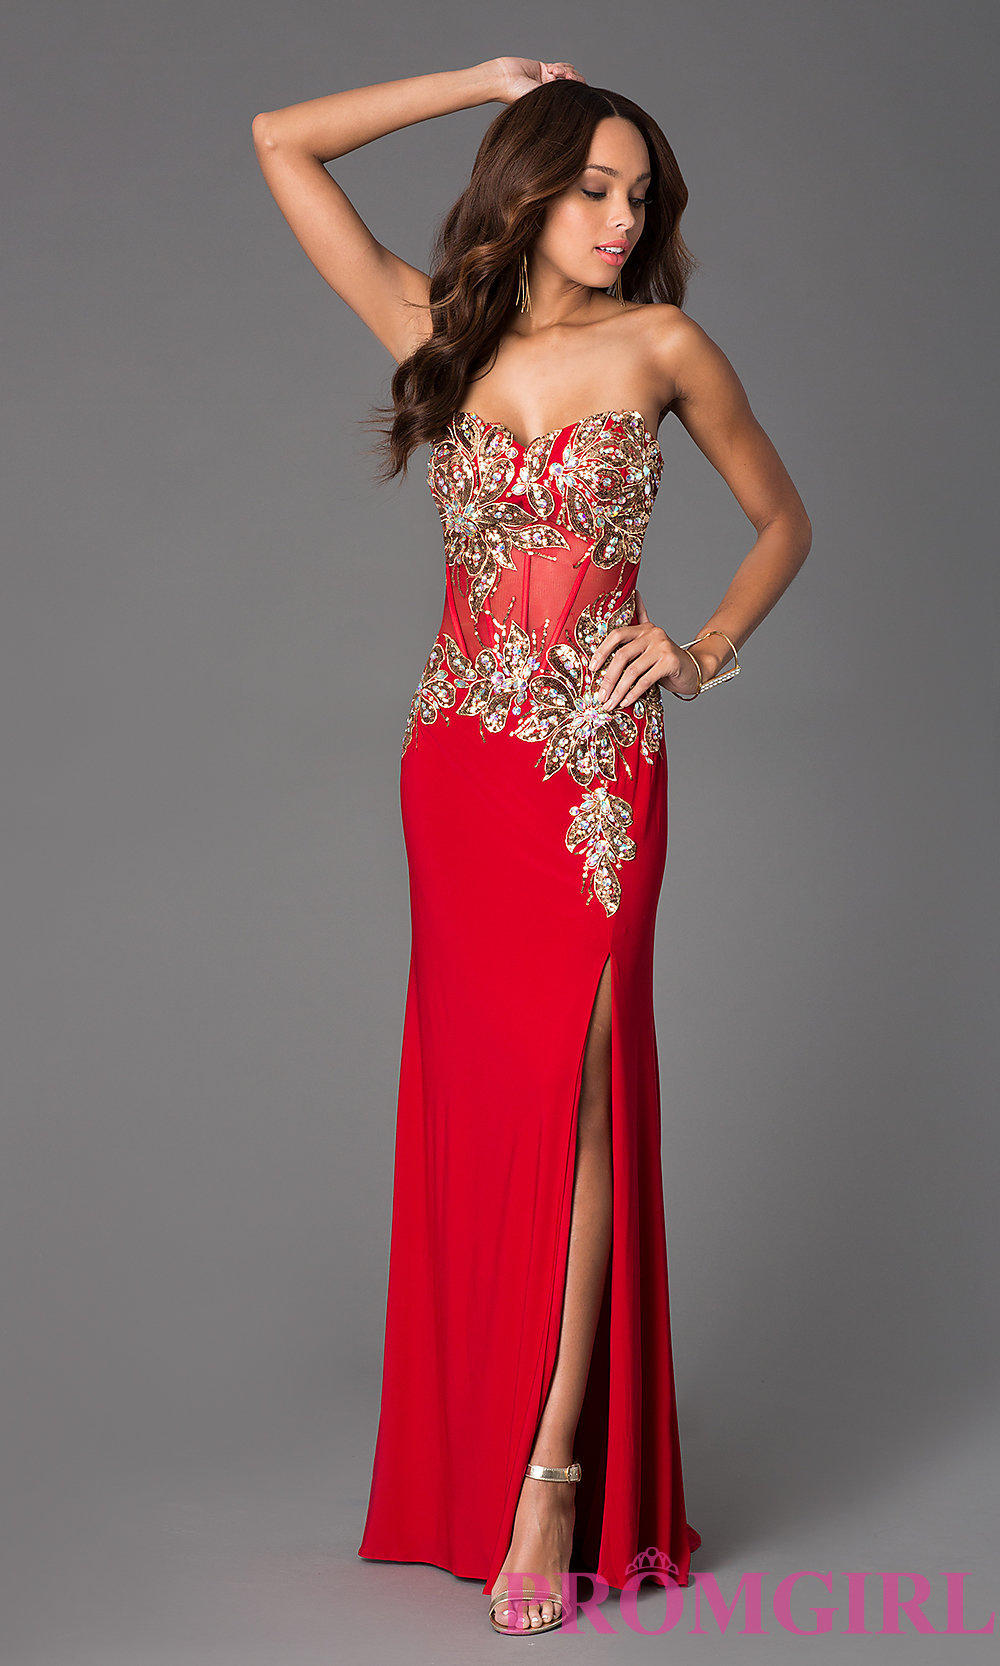 Strapless Corset Style Gown with Sequins